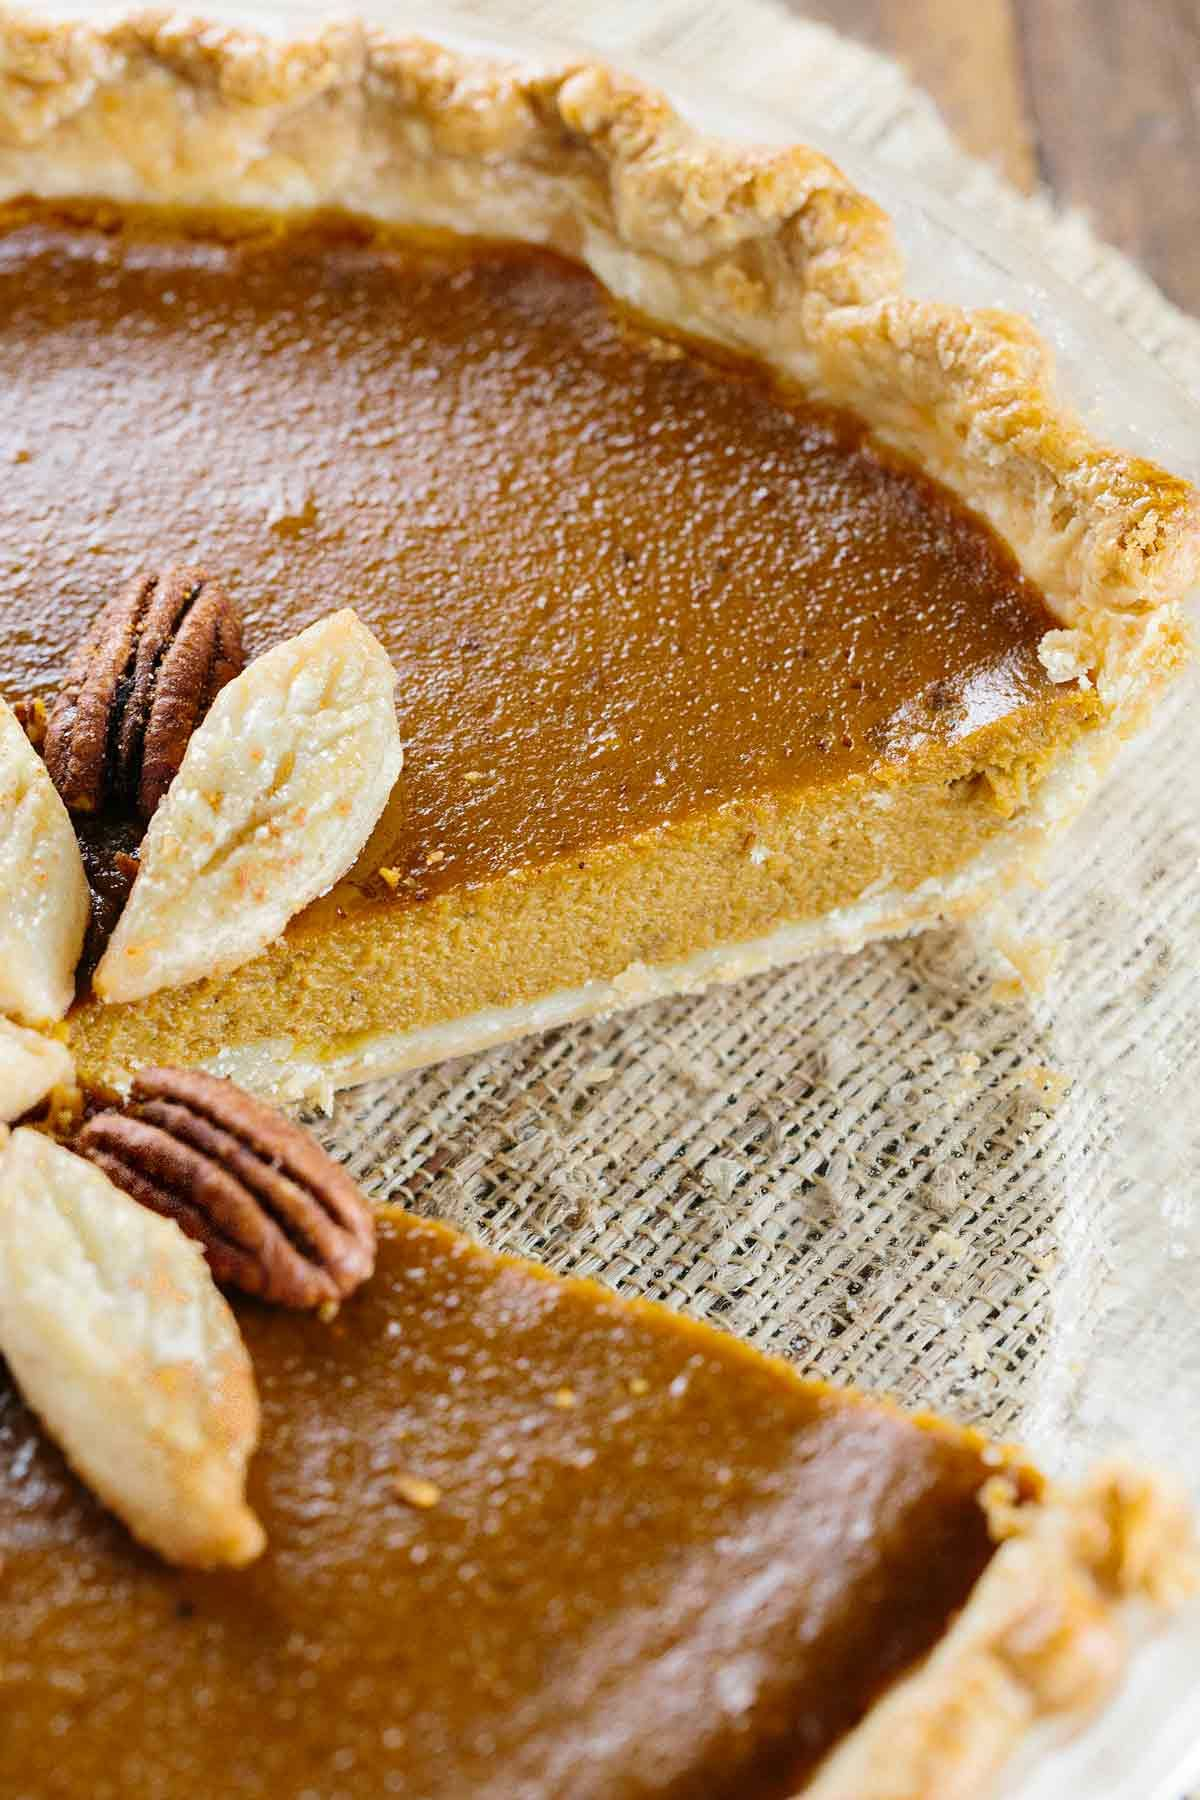 The Best Classic Pumpkin Pie Recipe - Traditional spices of cinnamon, nutmeg, ginger, cloves and black pepper are infused in the creamy pumpkin custard and baked in an incredibly flaky and tender crust! | jessicagavin.com